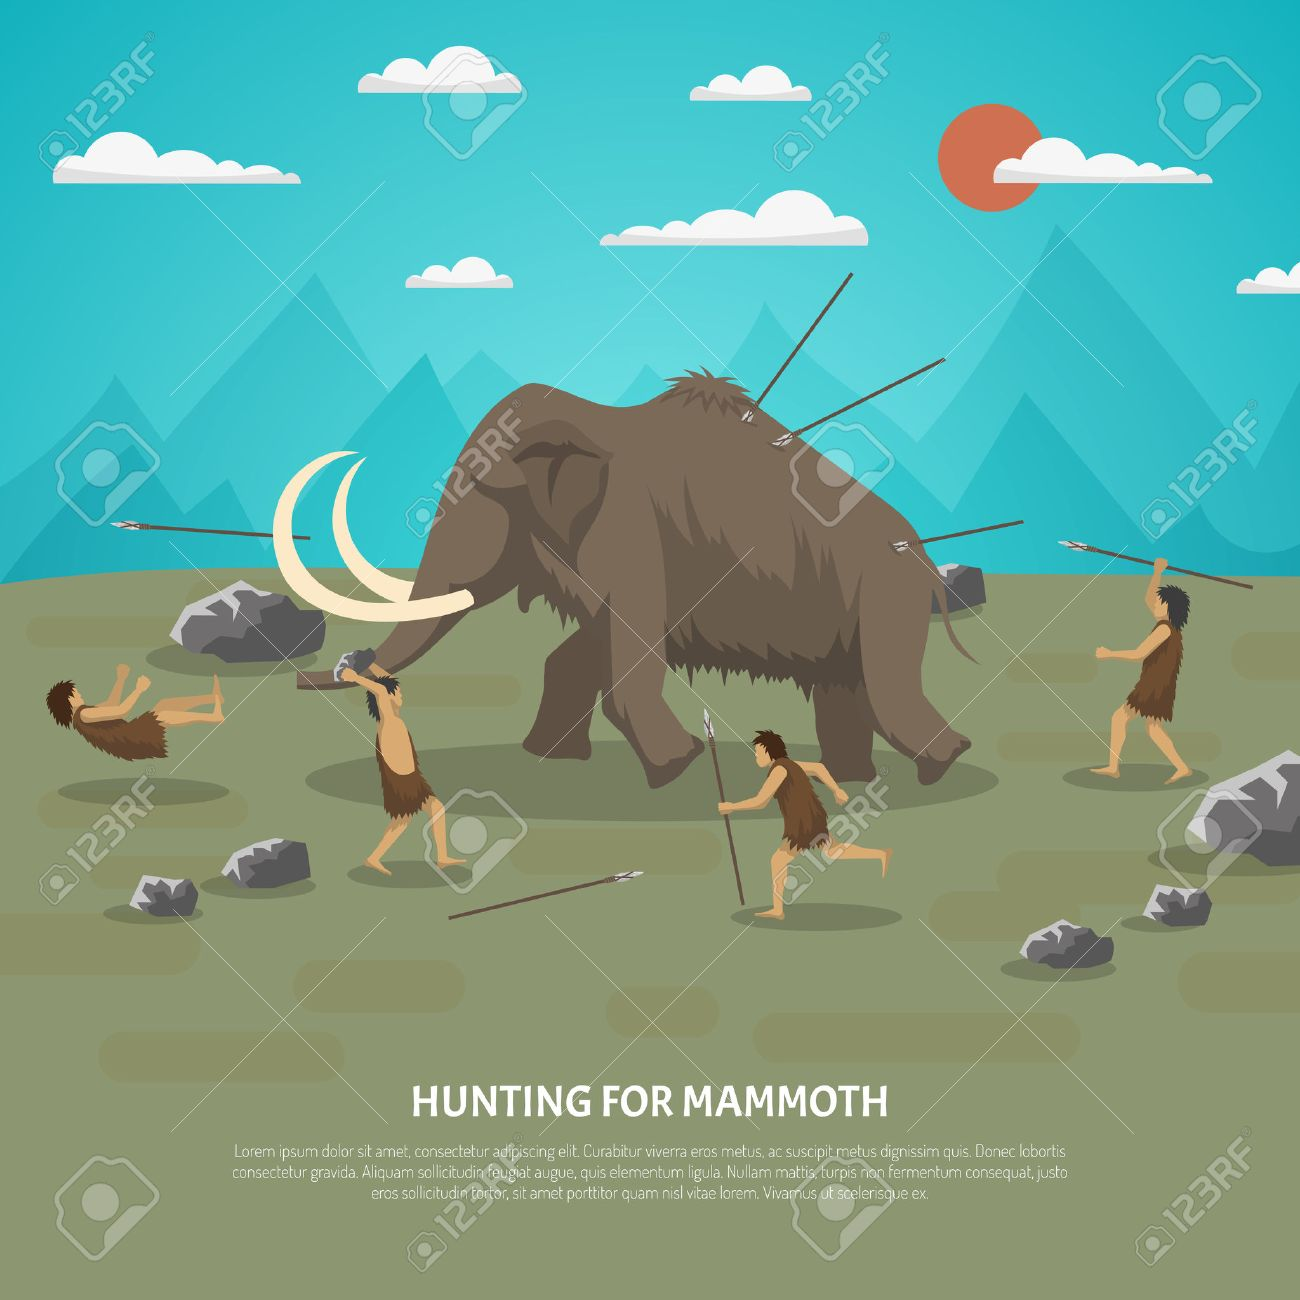 Color illustration showing hunting for mammoth caveman in prehistoric stone age with title vector illustration - 55977064